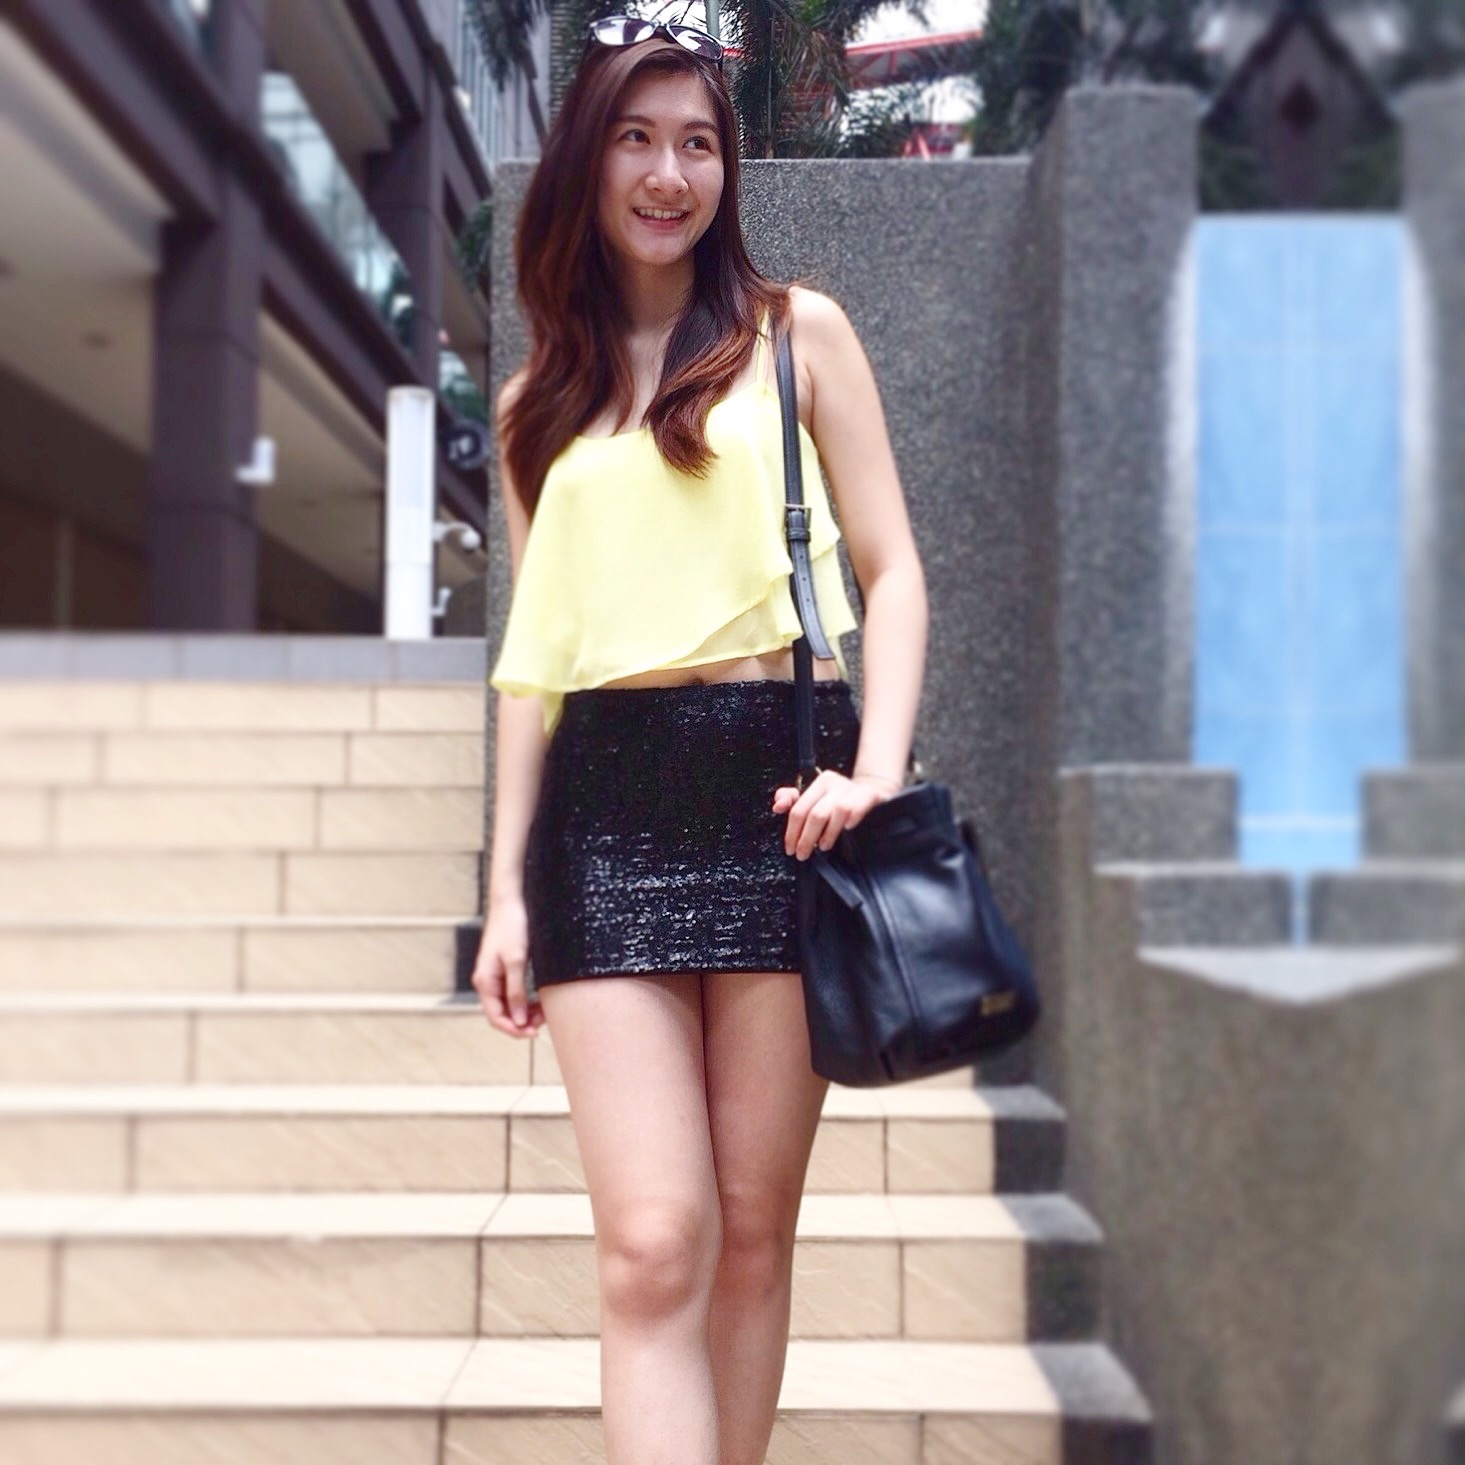 the-nat-channel-styled-by-n-ootd-yellow-crop-top.JPG